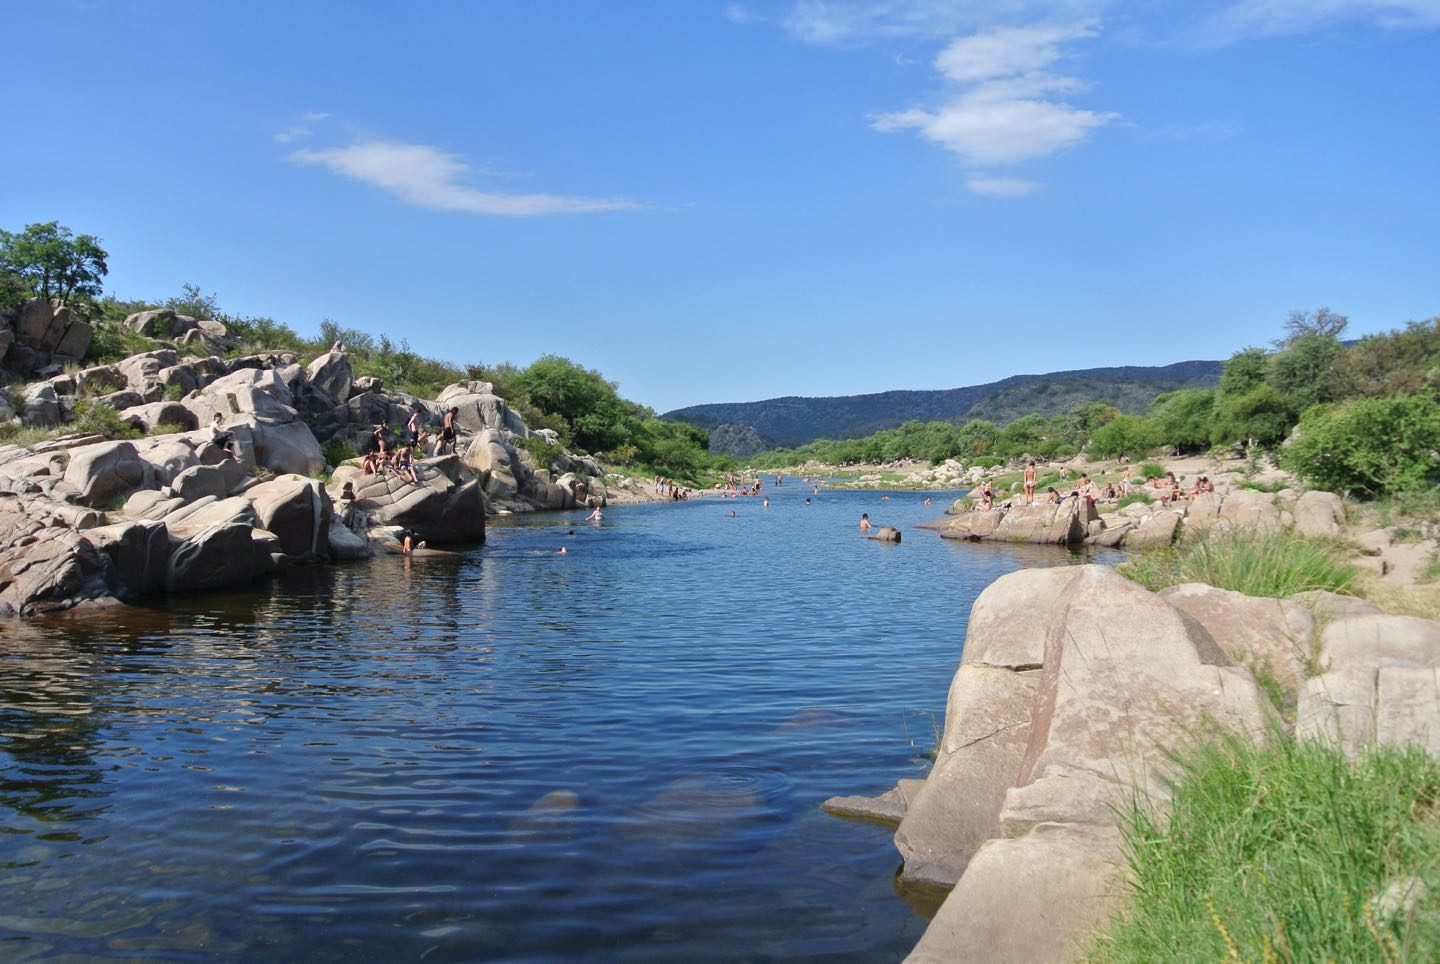 Tres Piletas Rio Quilpo swimming area, the main attraction in San Marcos Sierra on daytime.